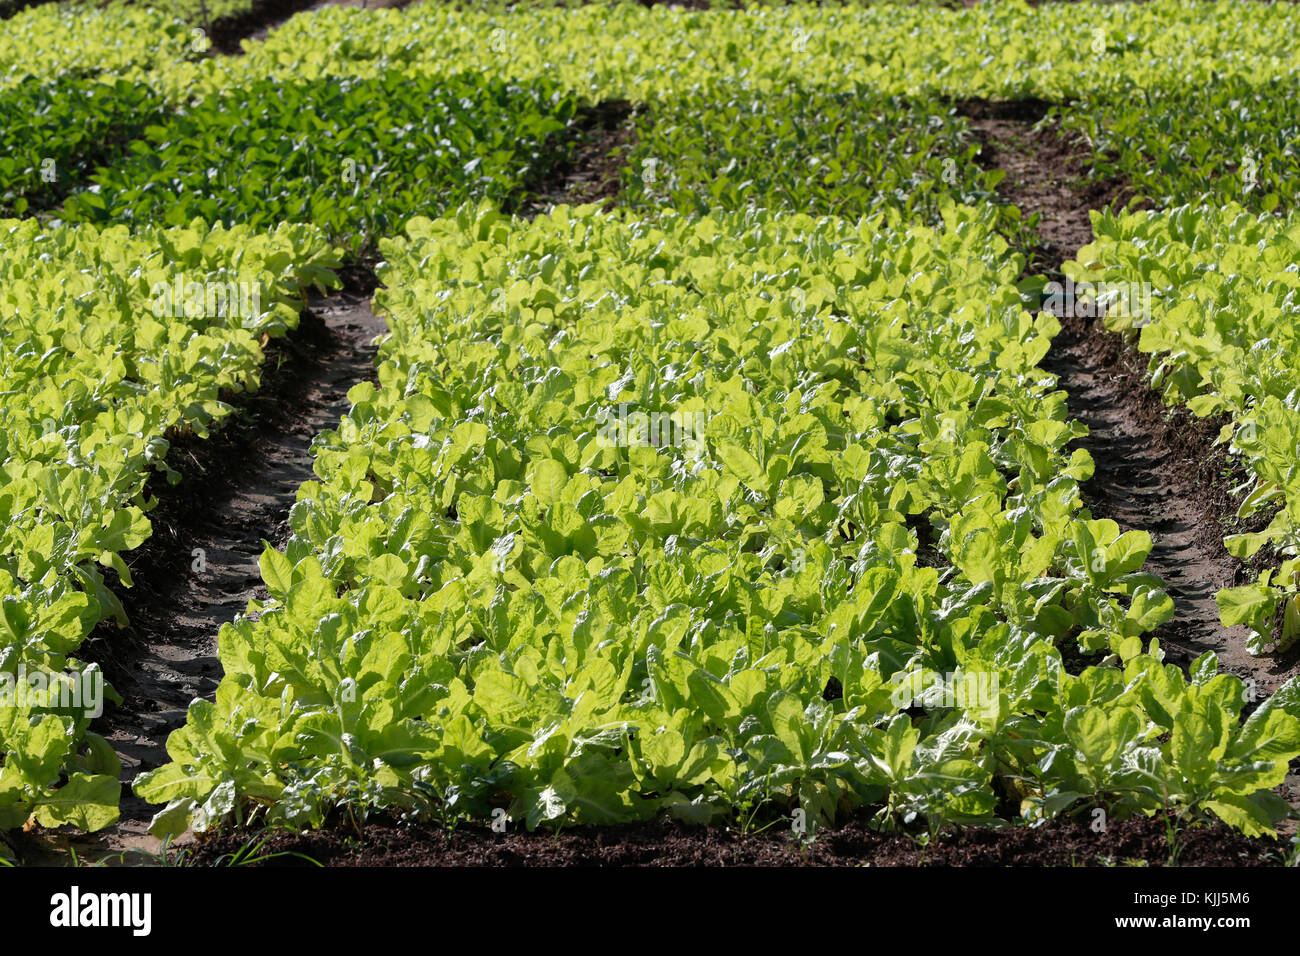 Agricultural fields. Heads of lettuce emerge from the soil to grow in the sun. Kon Tum. Vietnam. - Stock Image